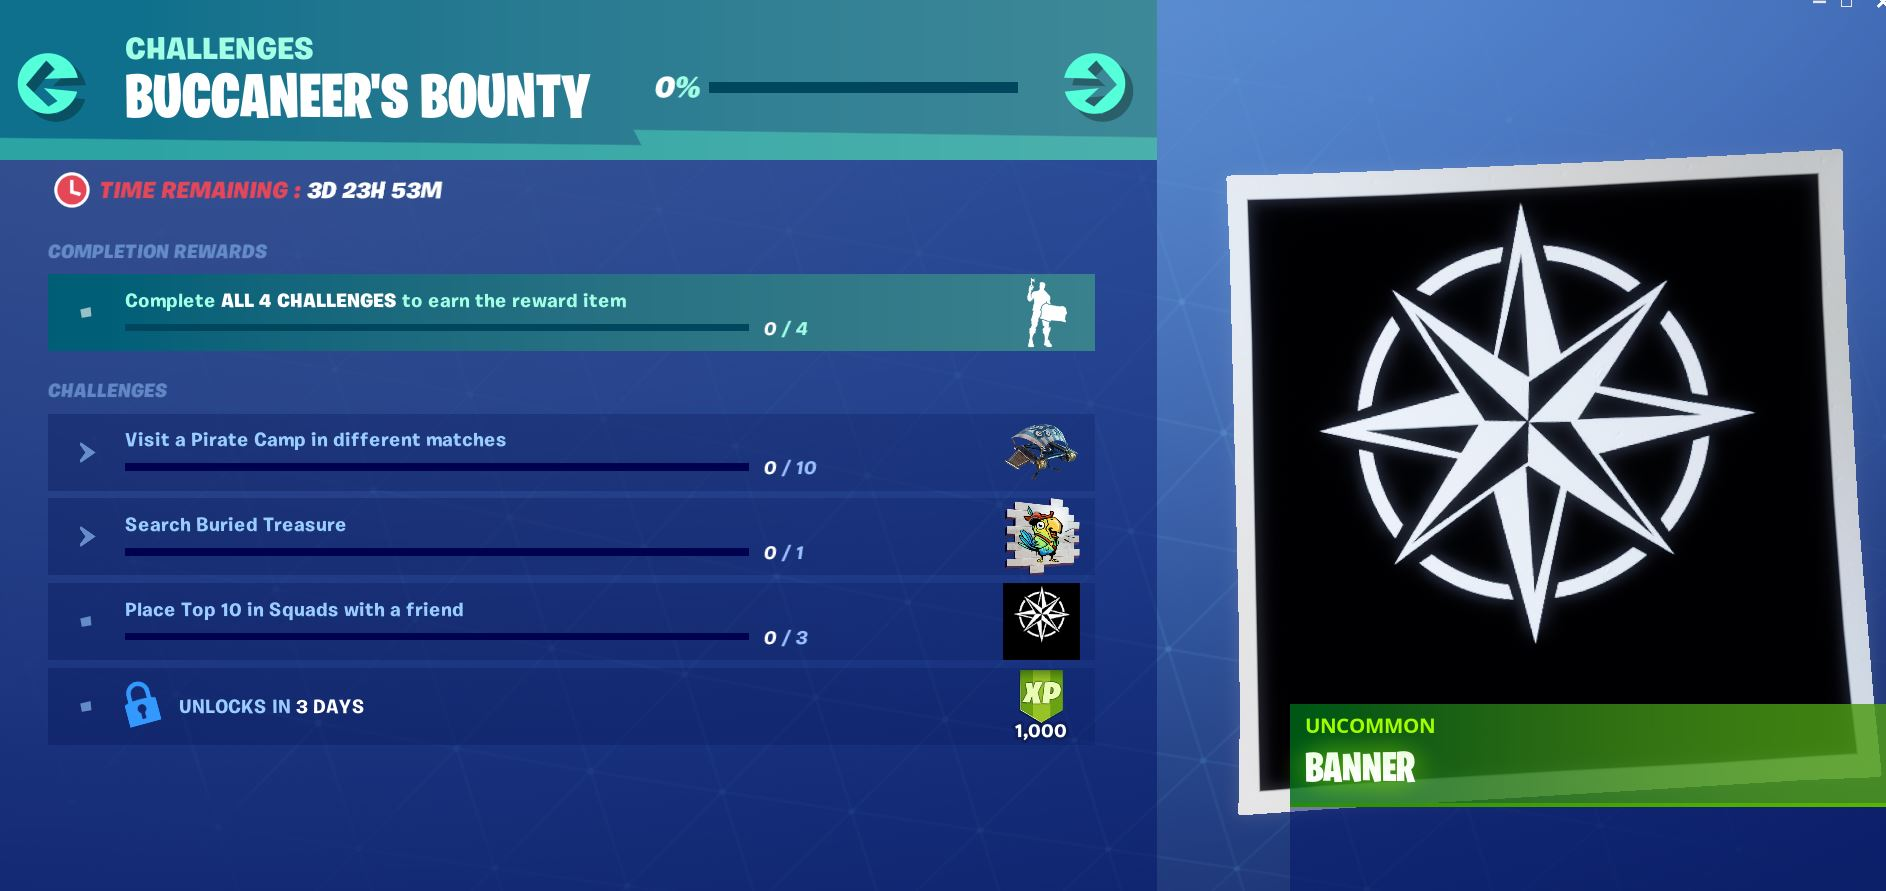 Fortnite Buccaneers Bounty Challenge and Reward - Day 3